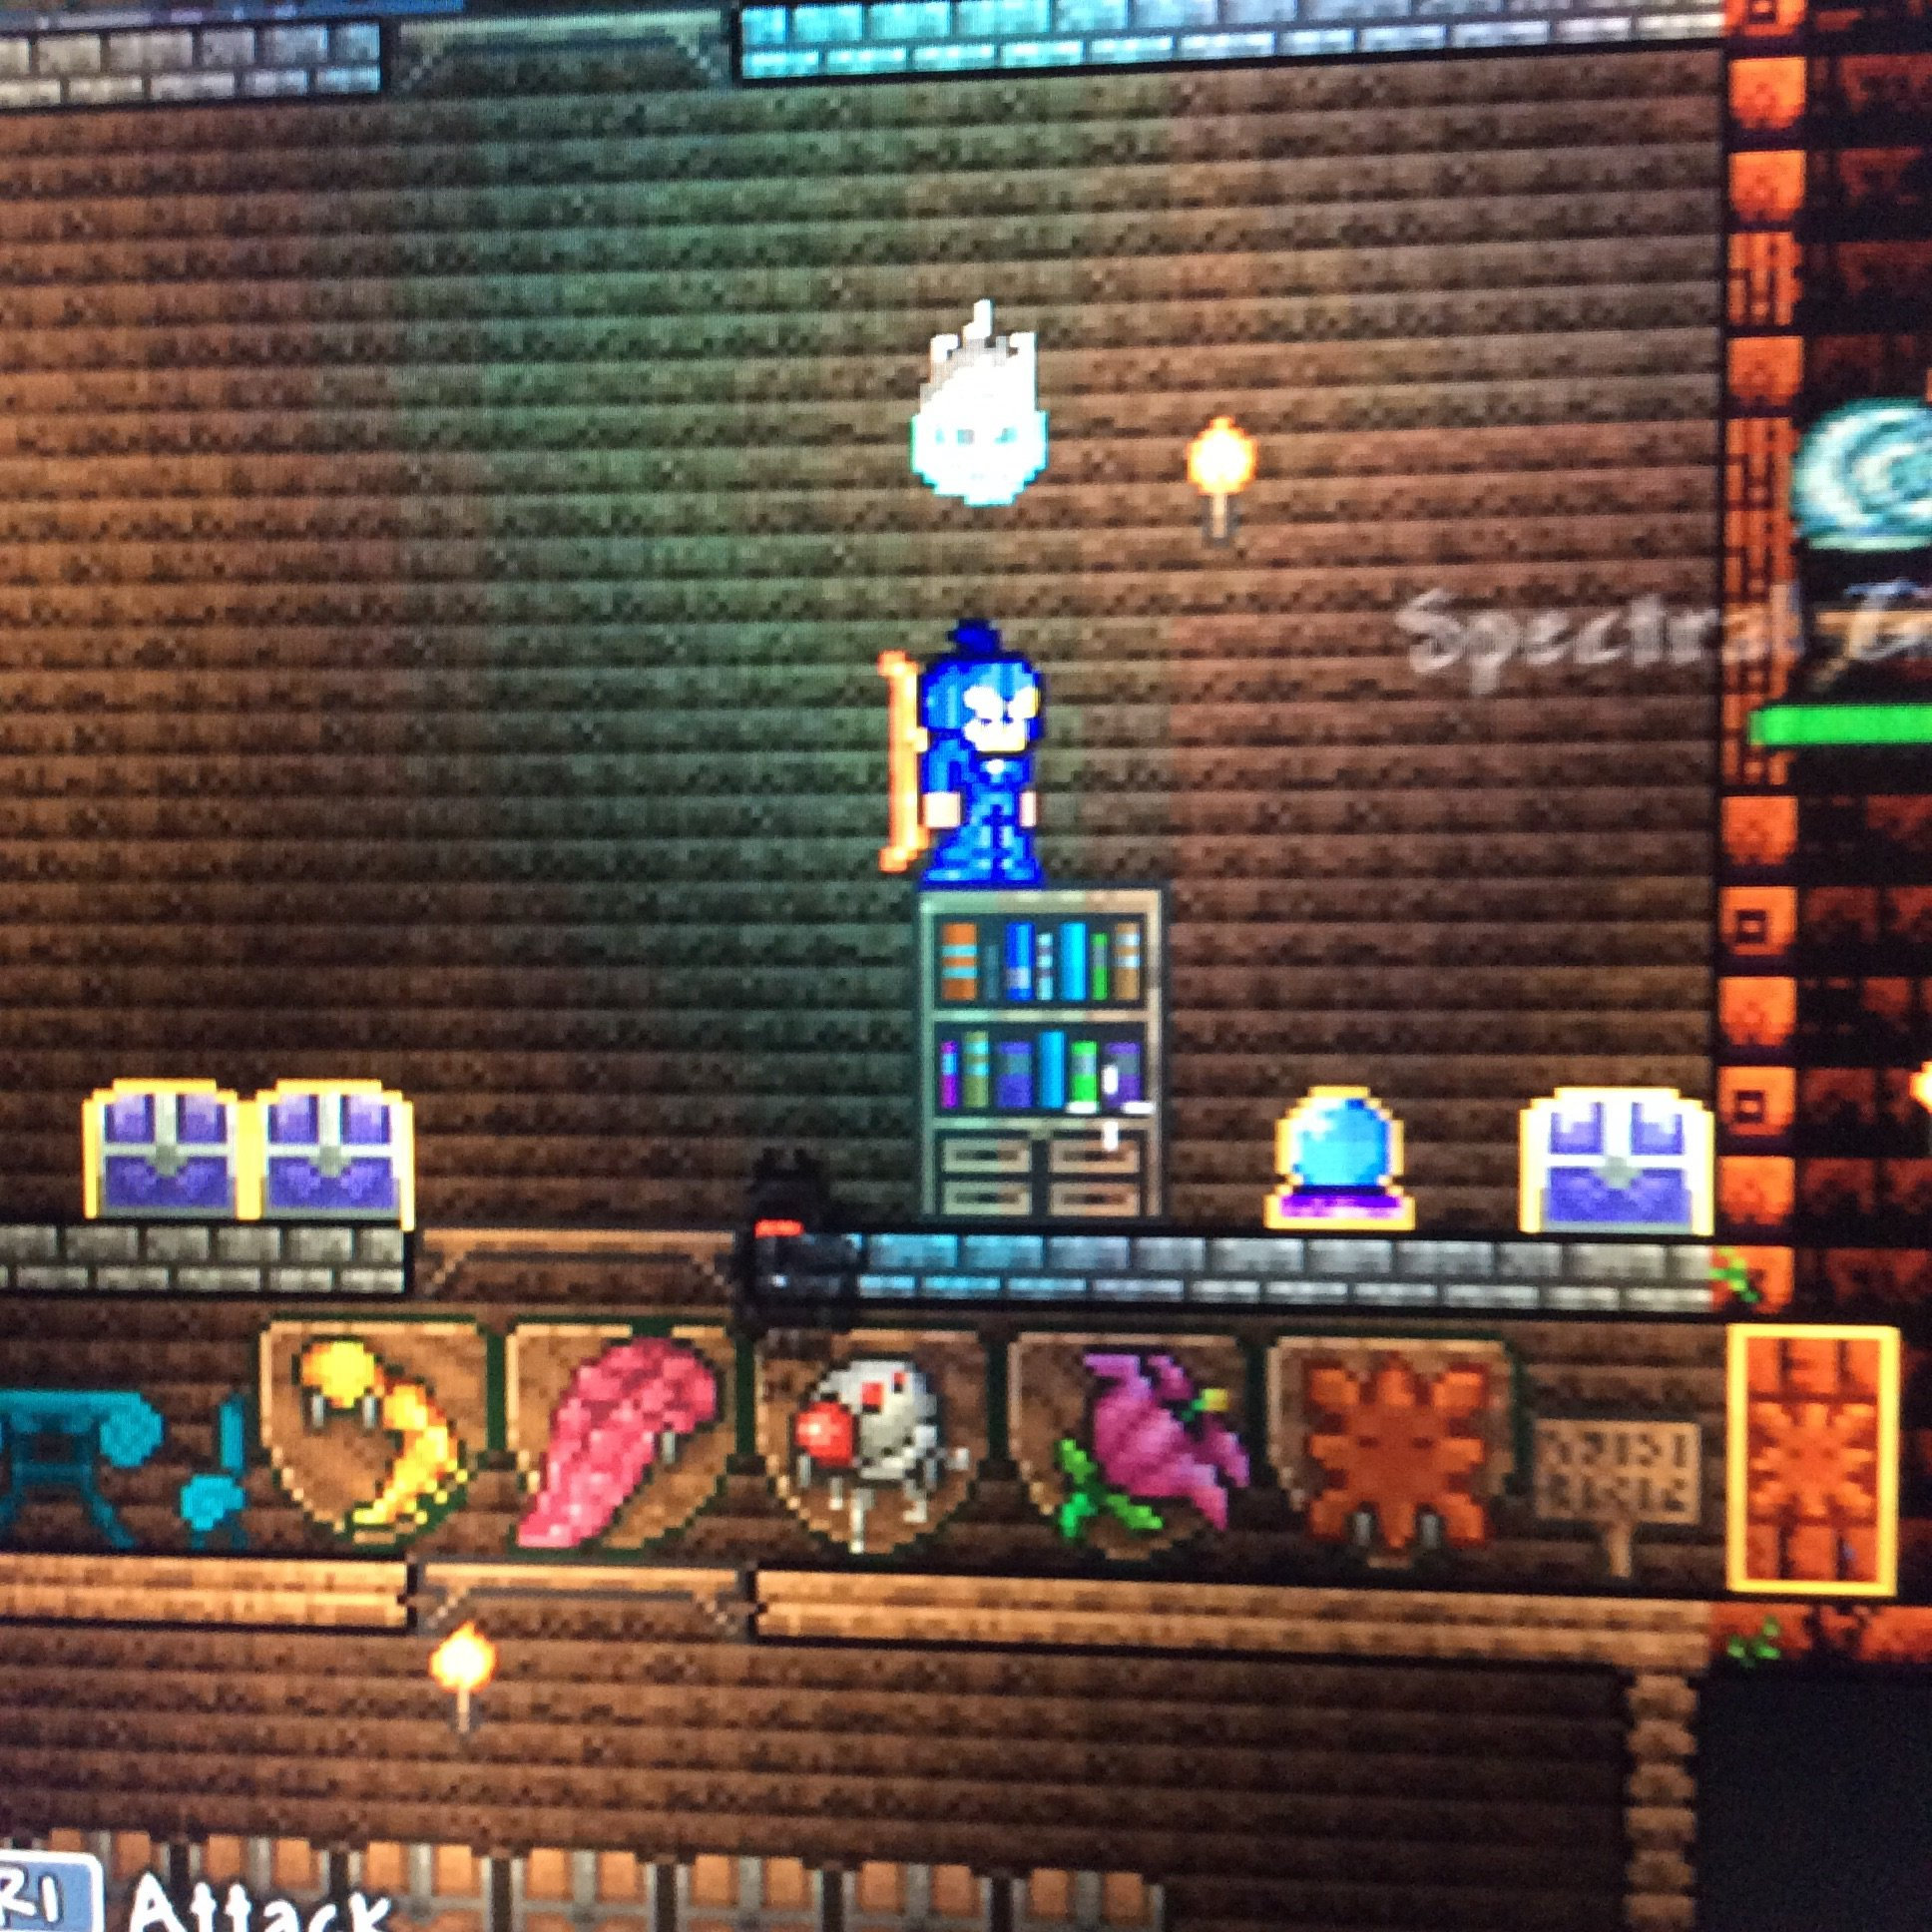 PS3 - Flame Wings Obtained | Terraria Community Forums